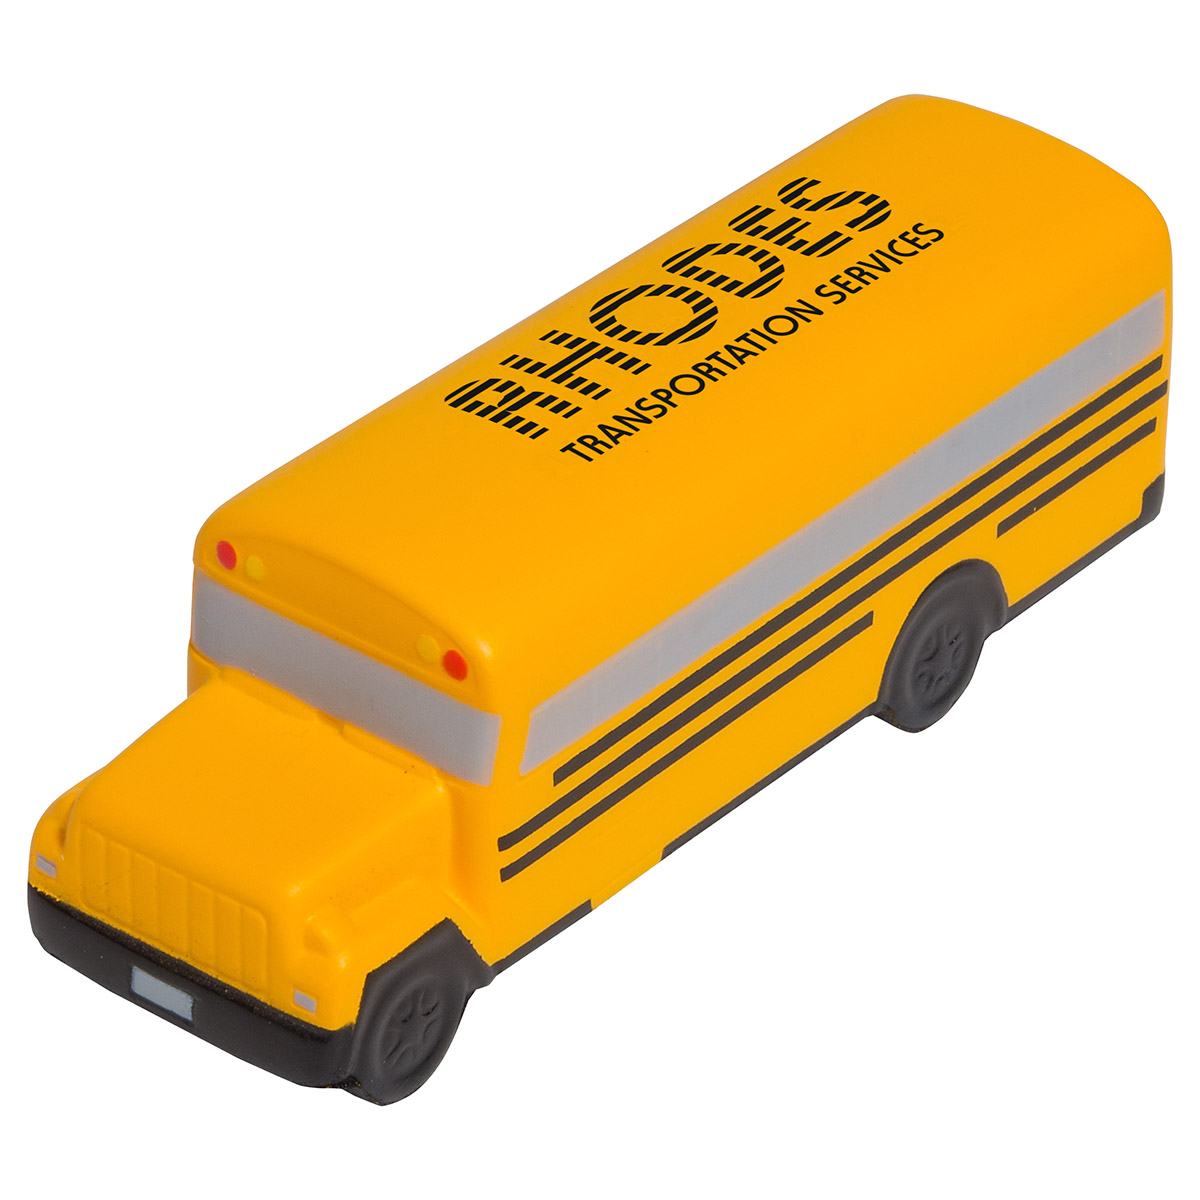 Conventional School Bus Stress Reliever, LED-SB23, 1 Colour Imprint